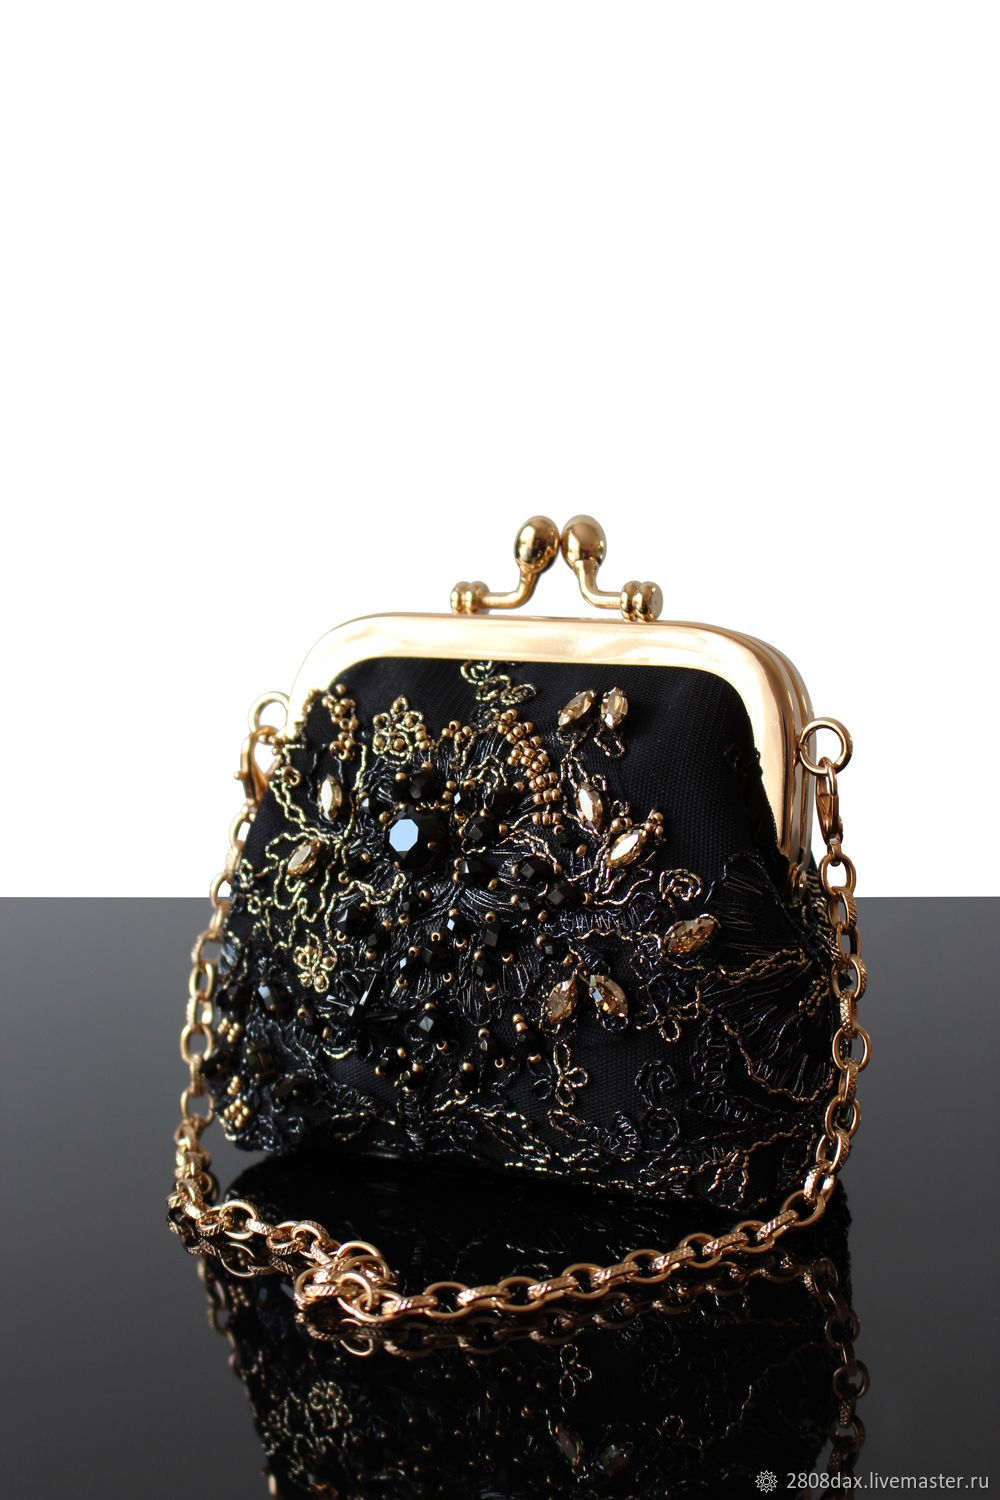 Black Small Evening Bag with Embroidery, Wallets, Bordeaux,  Фото №1